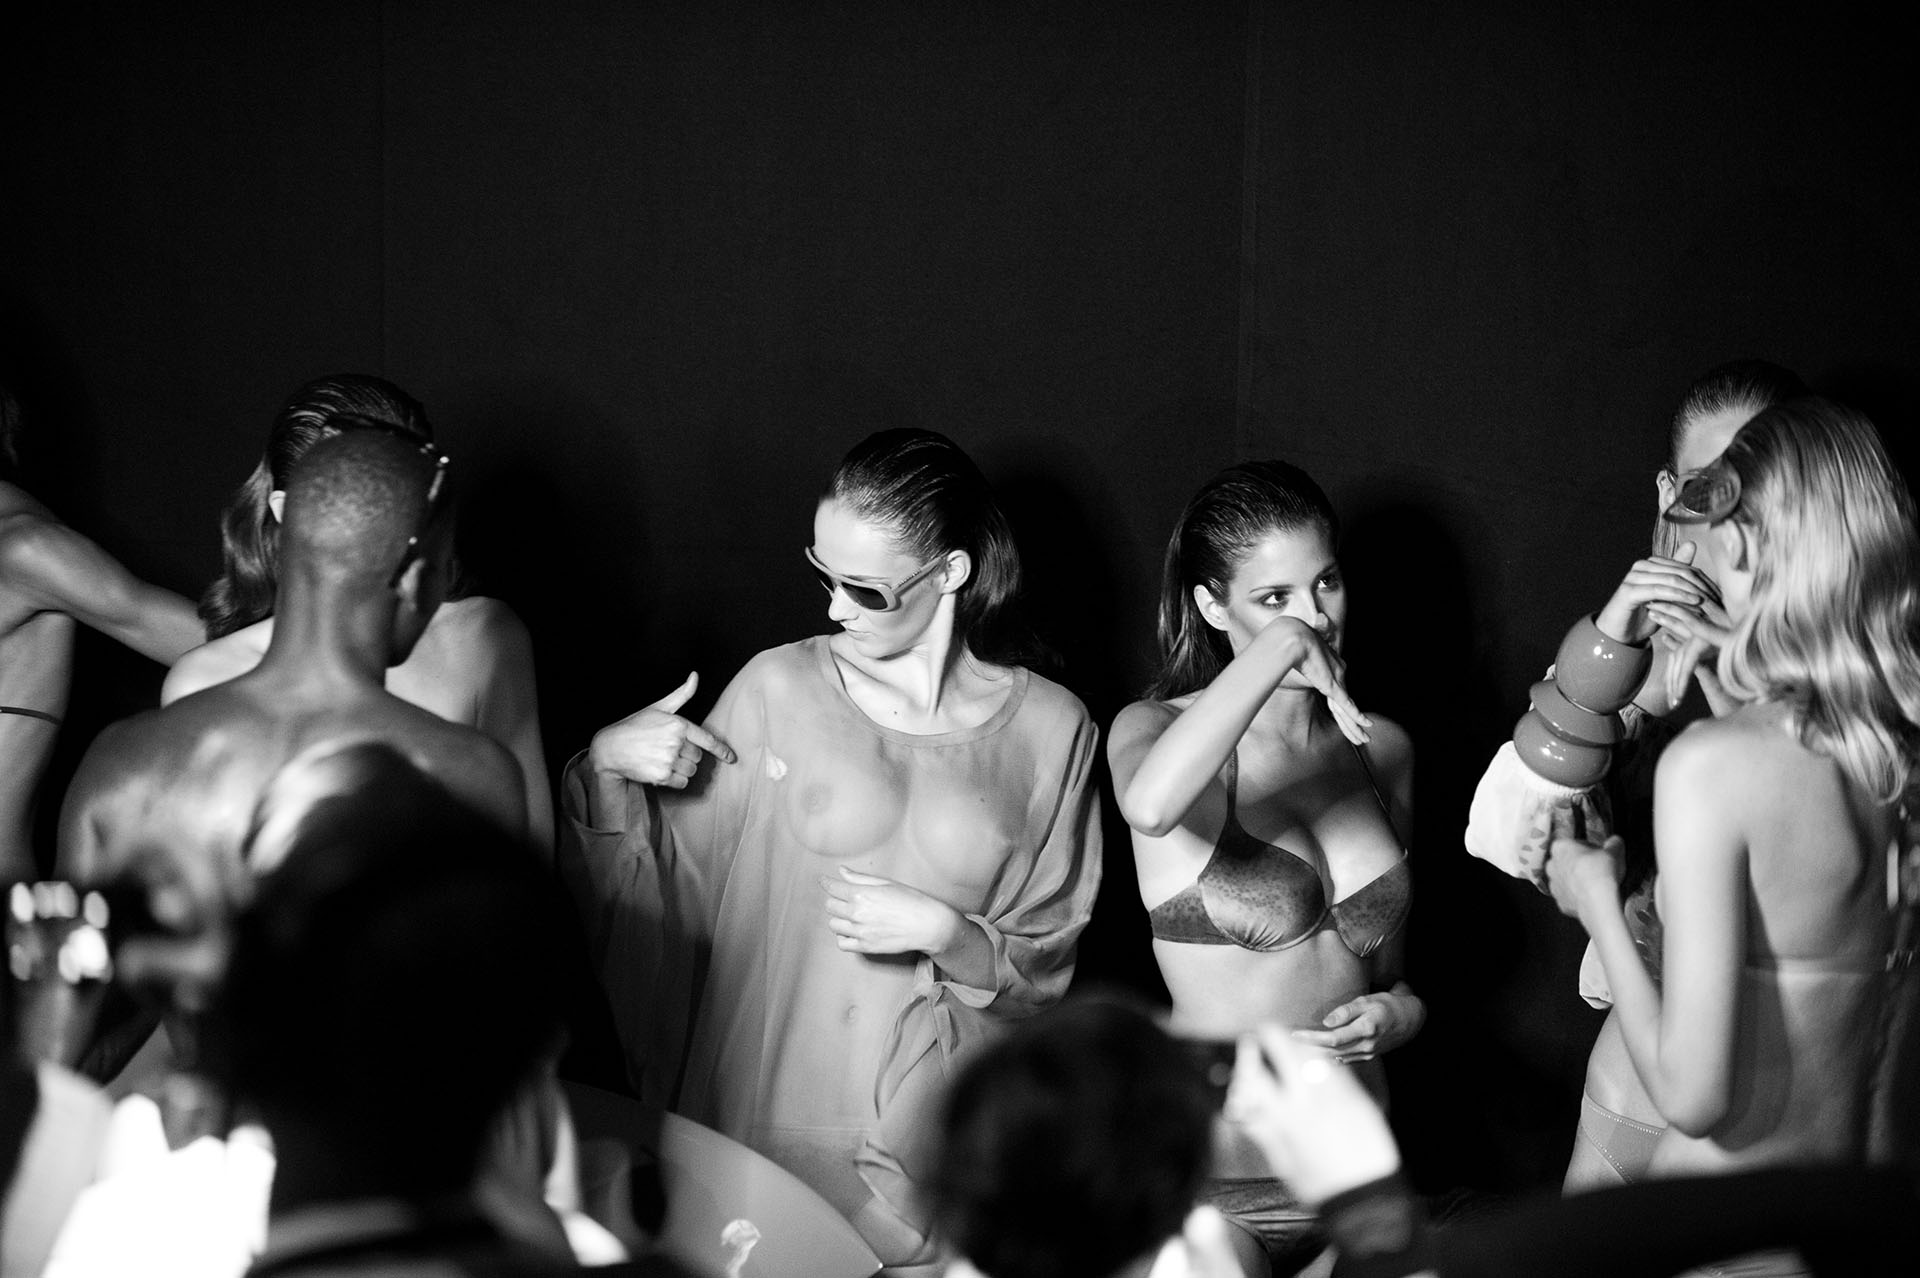 Models, Backstage